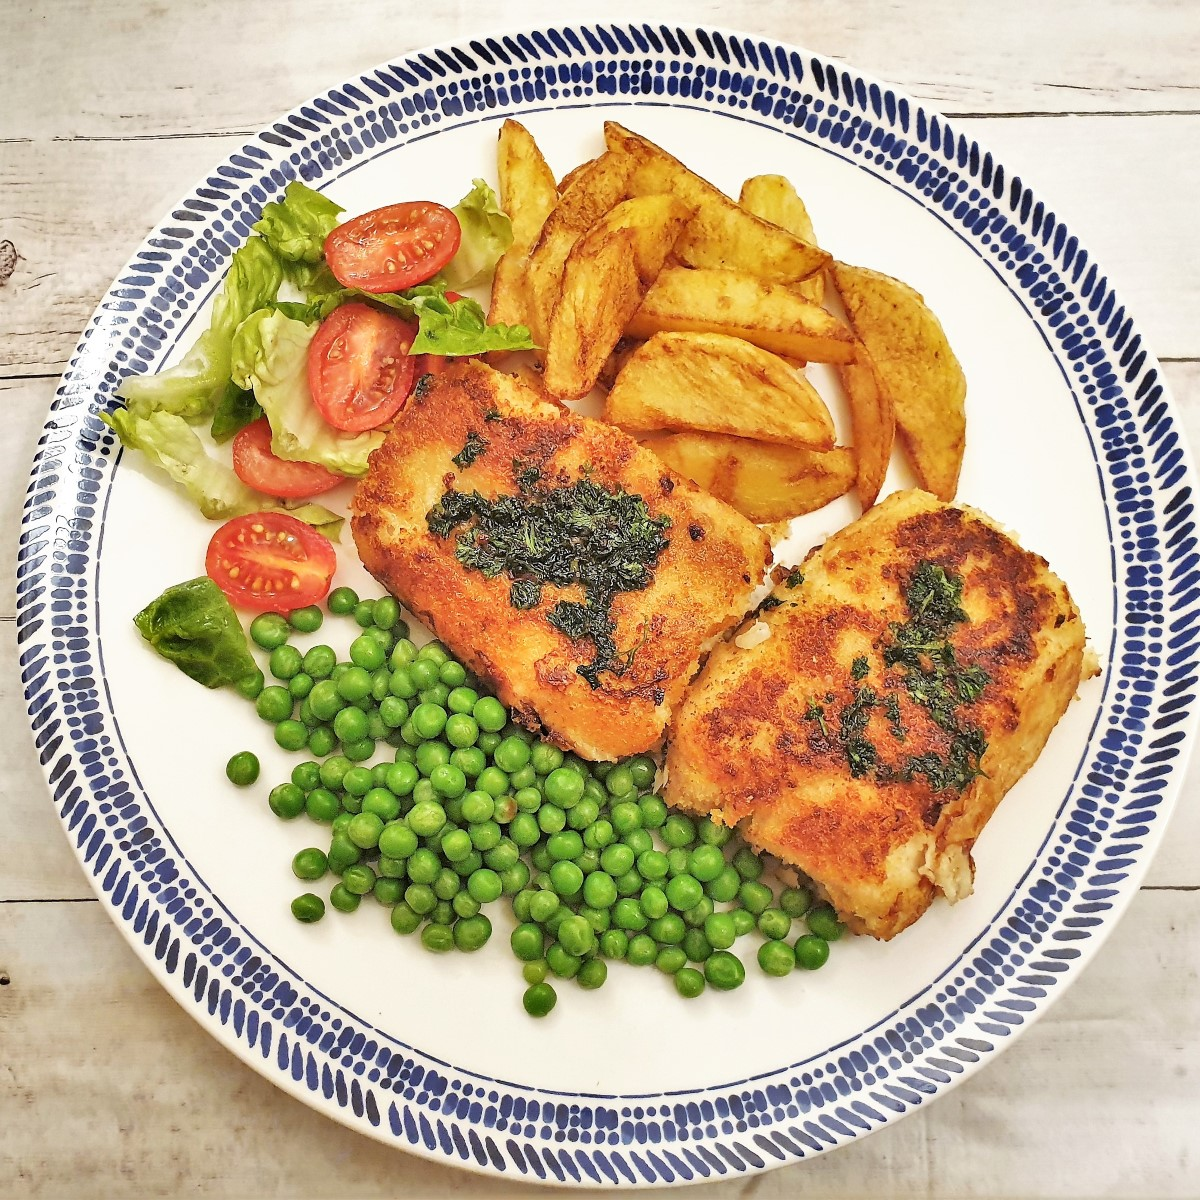 Overhead shot of fried fish fillets on a plate with chips, peas and tomato salad.